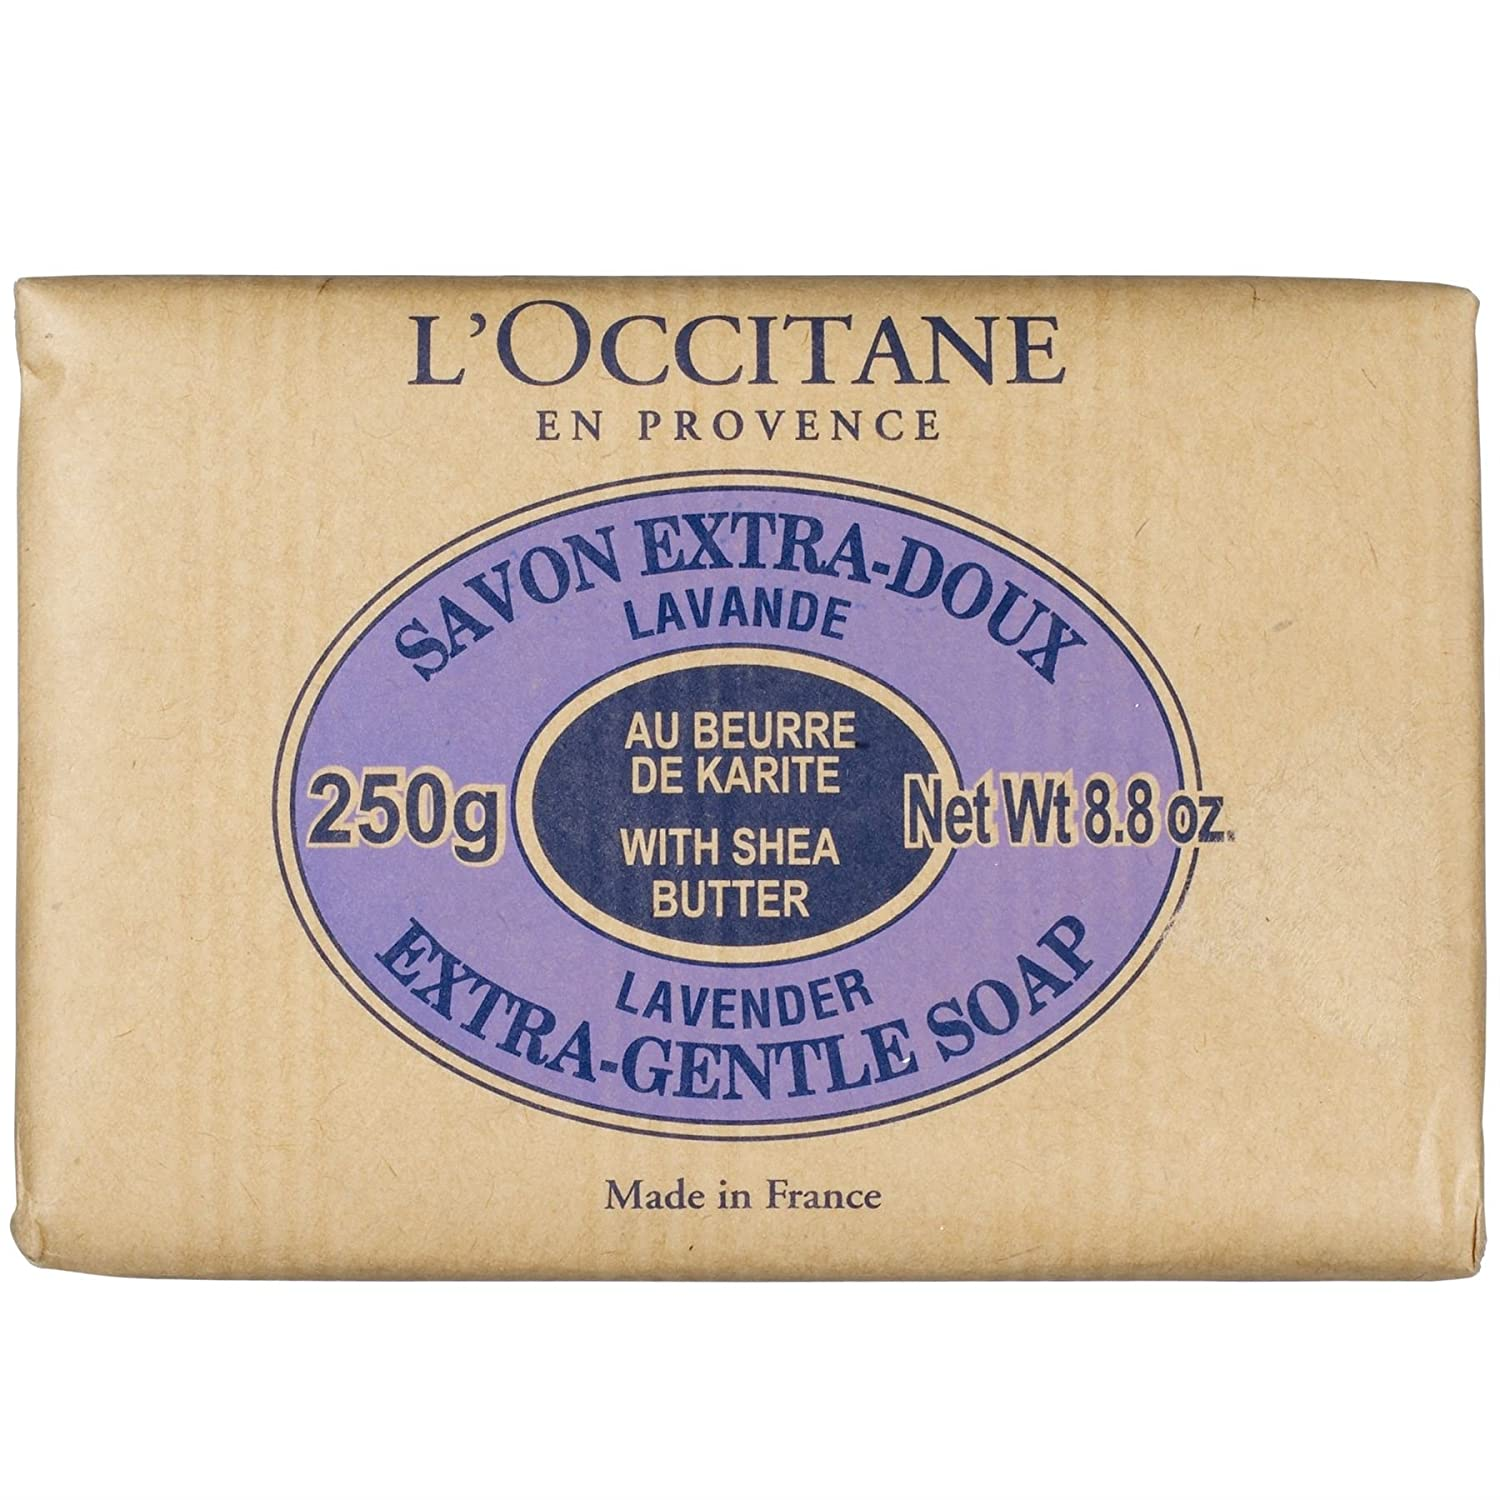 Loccitane Lavender Shea Butter Extra Gentle Soap 250g Pack Of 6 Ampamp Glory Irresistibubble Gift Set Kitchen Home